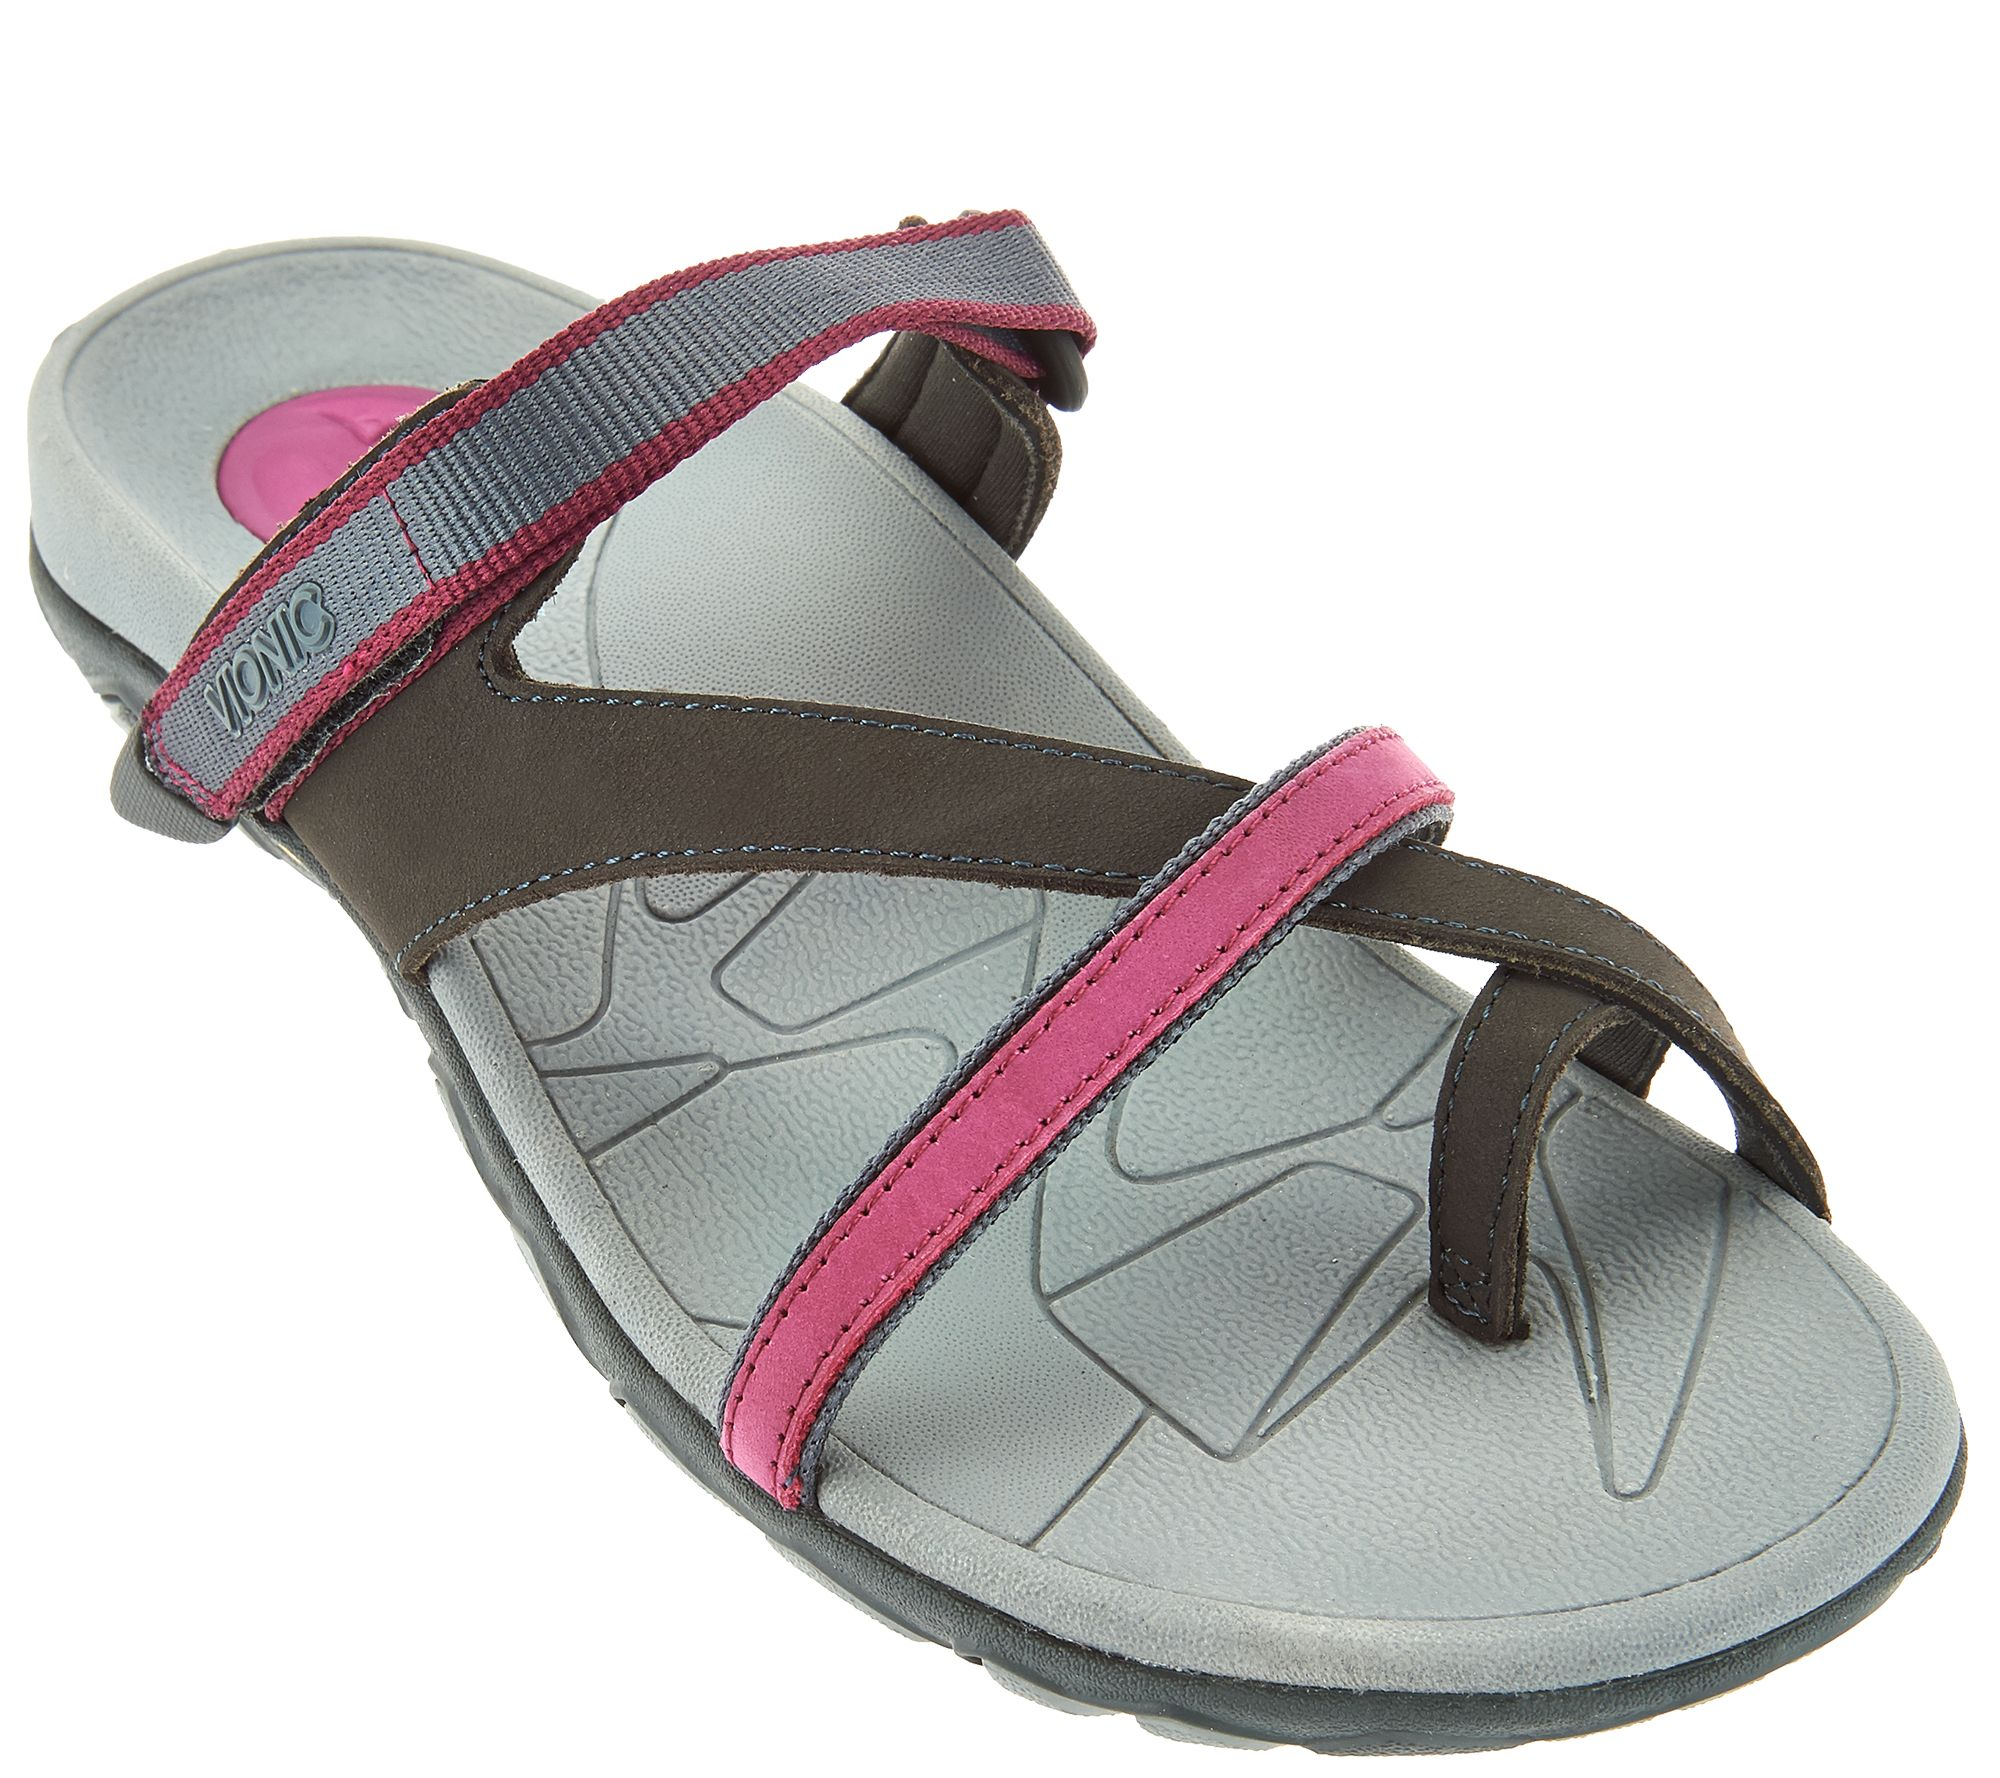 a5cdca353a7 Vionic Orthotic Leather Sport Sandals - Mojave - Page 1 — QVC.com